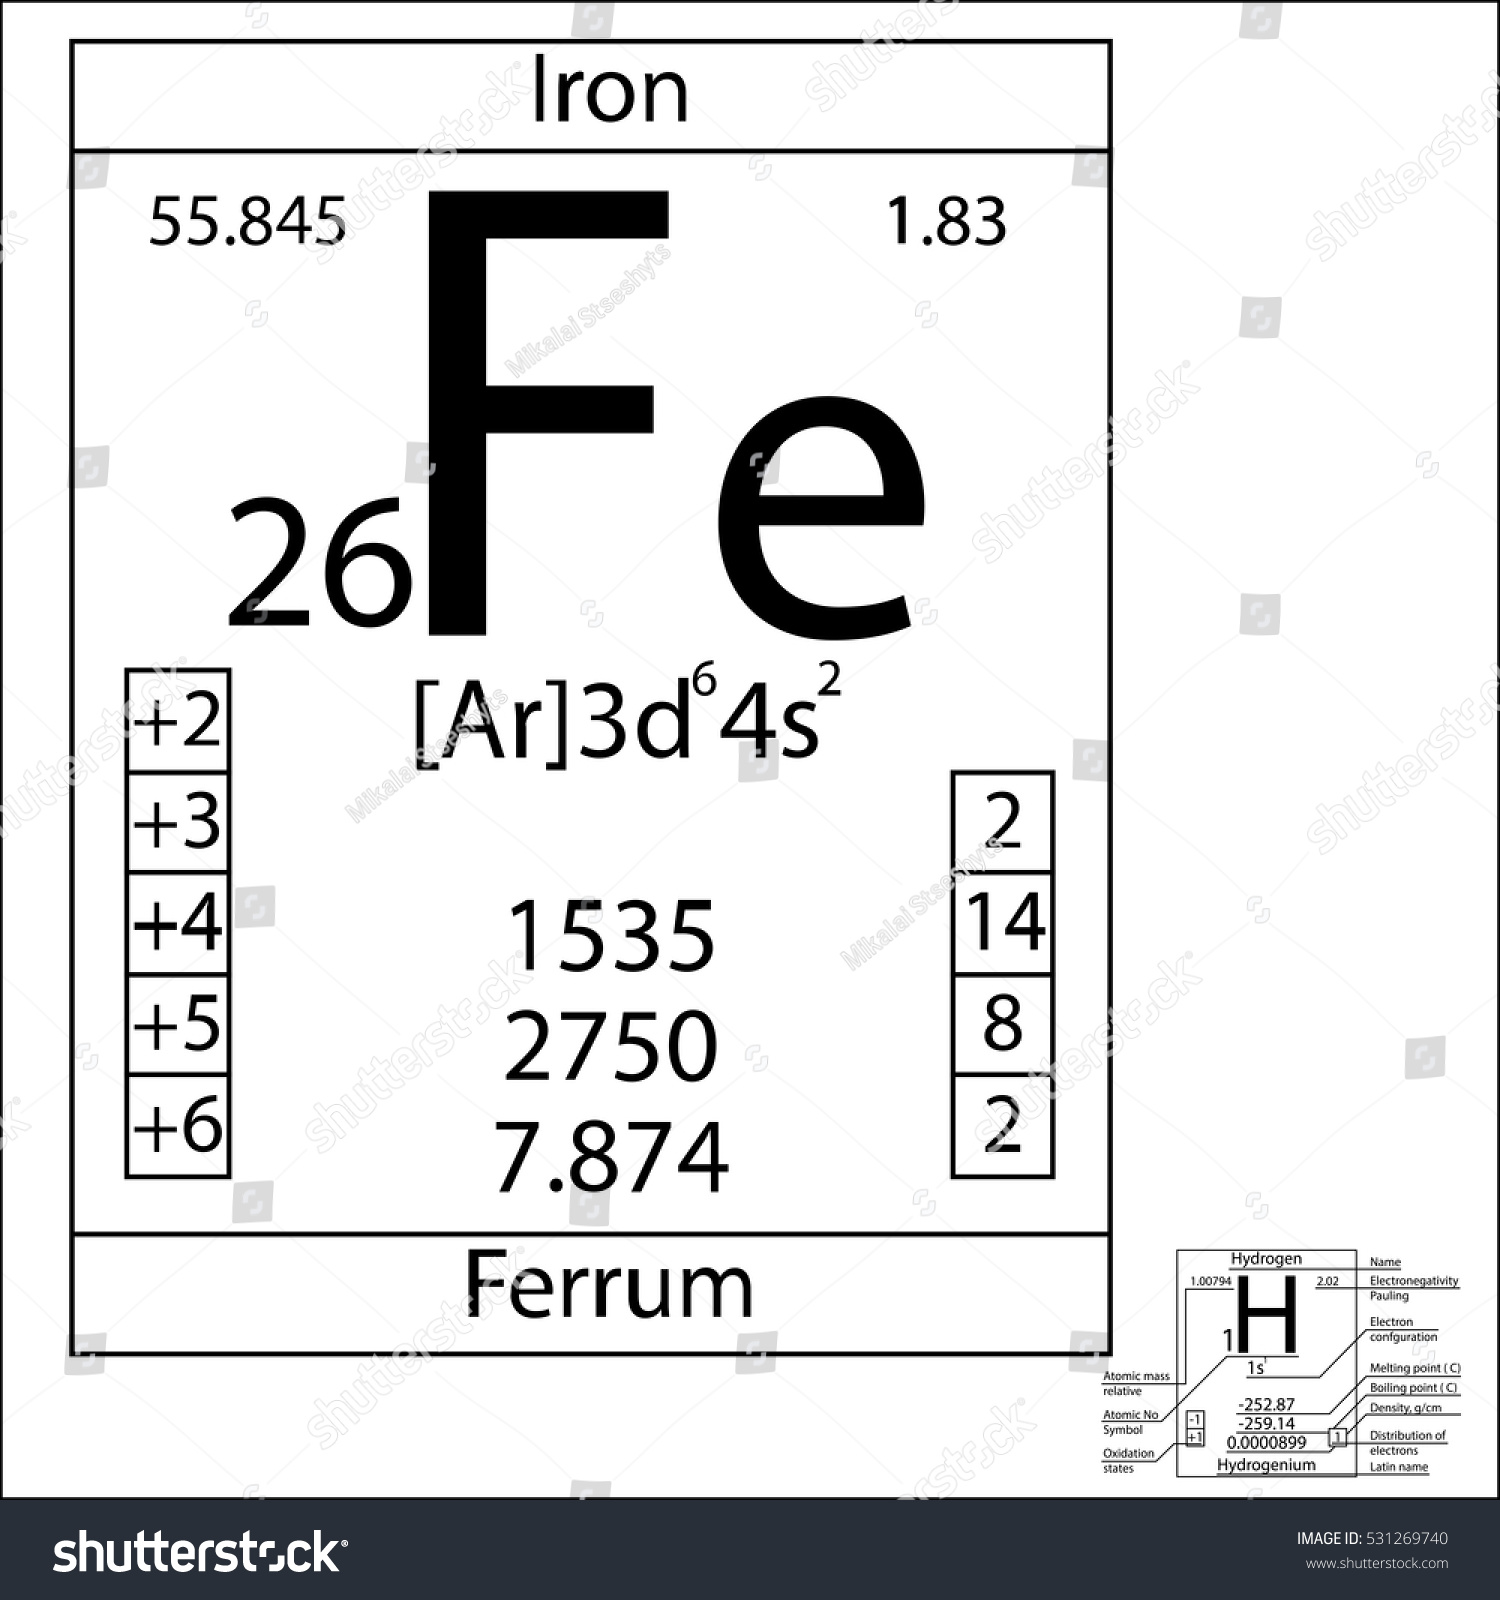 Fe iron periodic table gallery periodic table images fe iron periodic table image collections periodic table images fe iron periodic table gallery periodic table gamestrikefo Choice Image